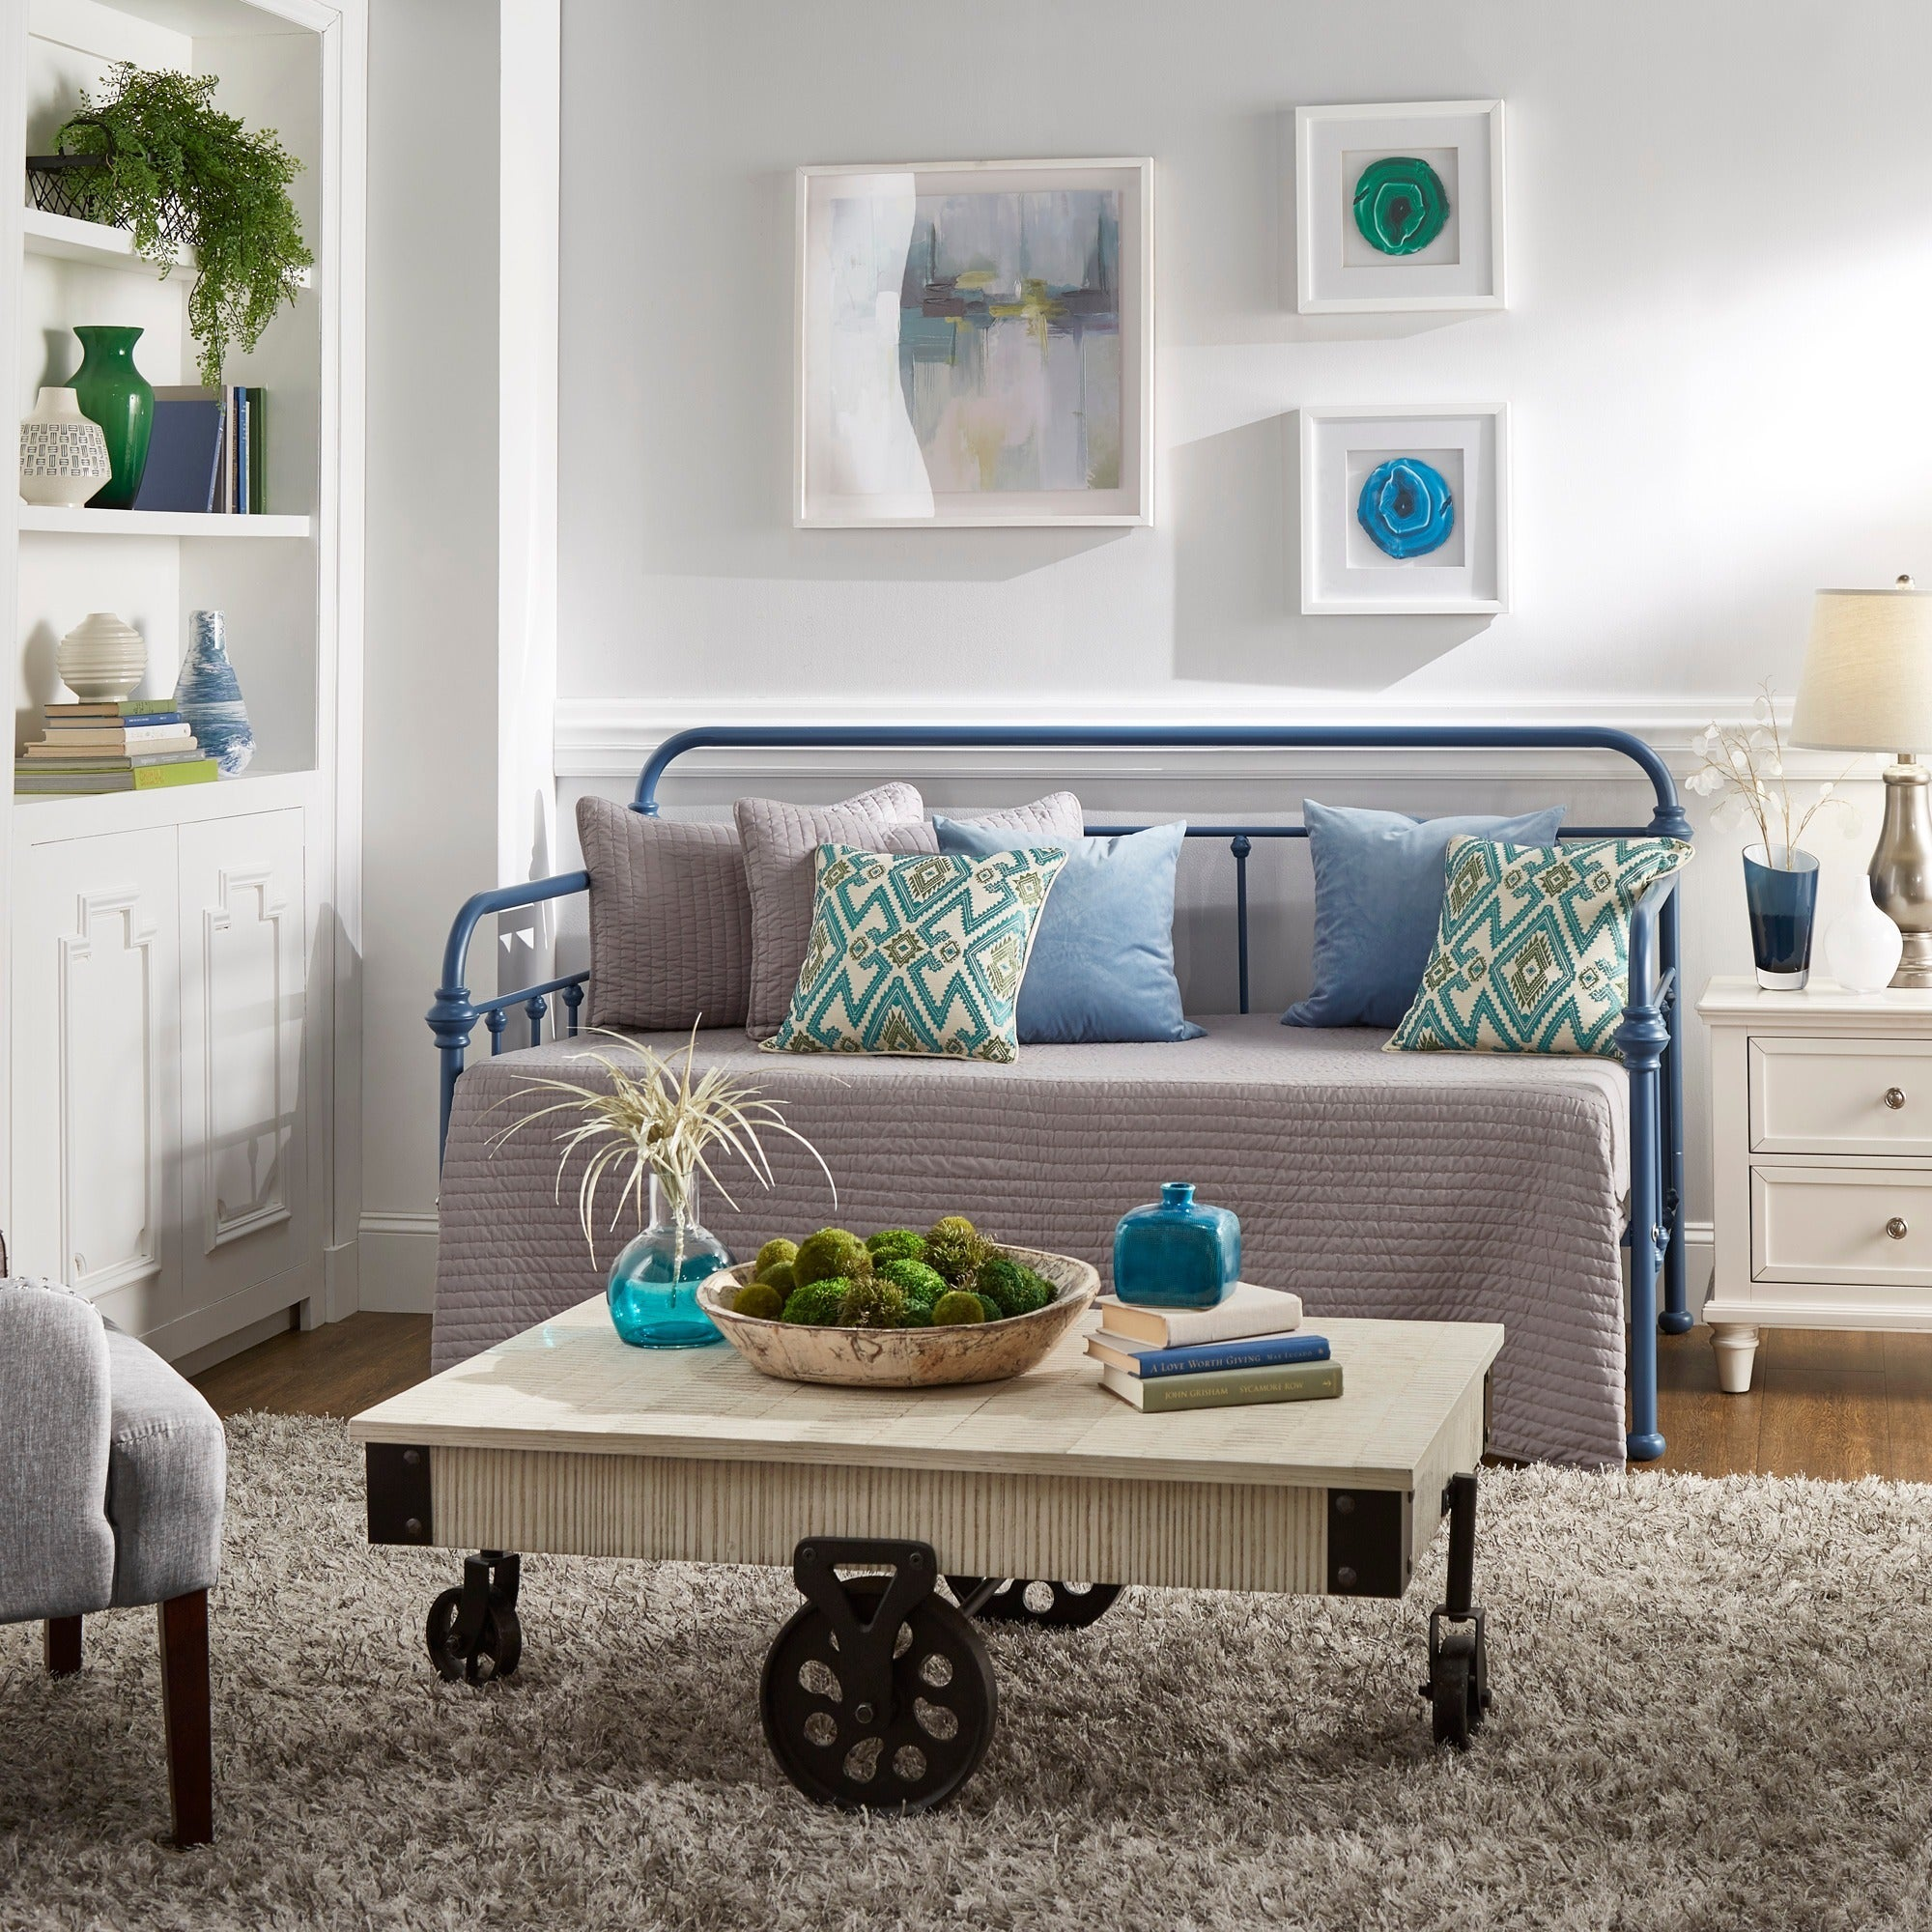 Giselle II Antique Graceful Lines Iron Metal Daybed iNSPI...